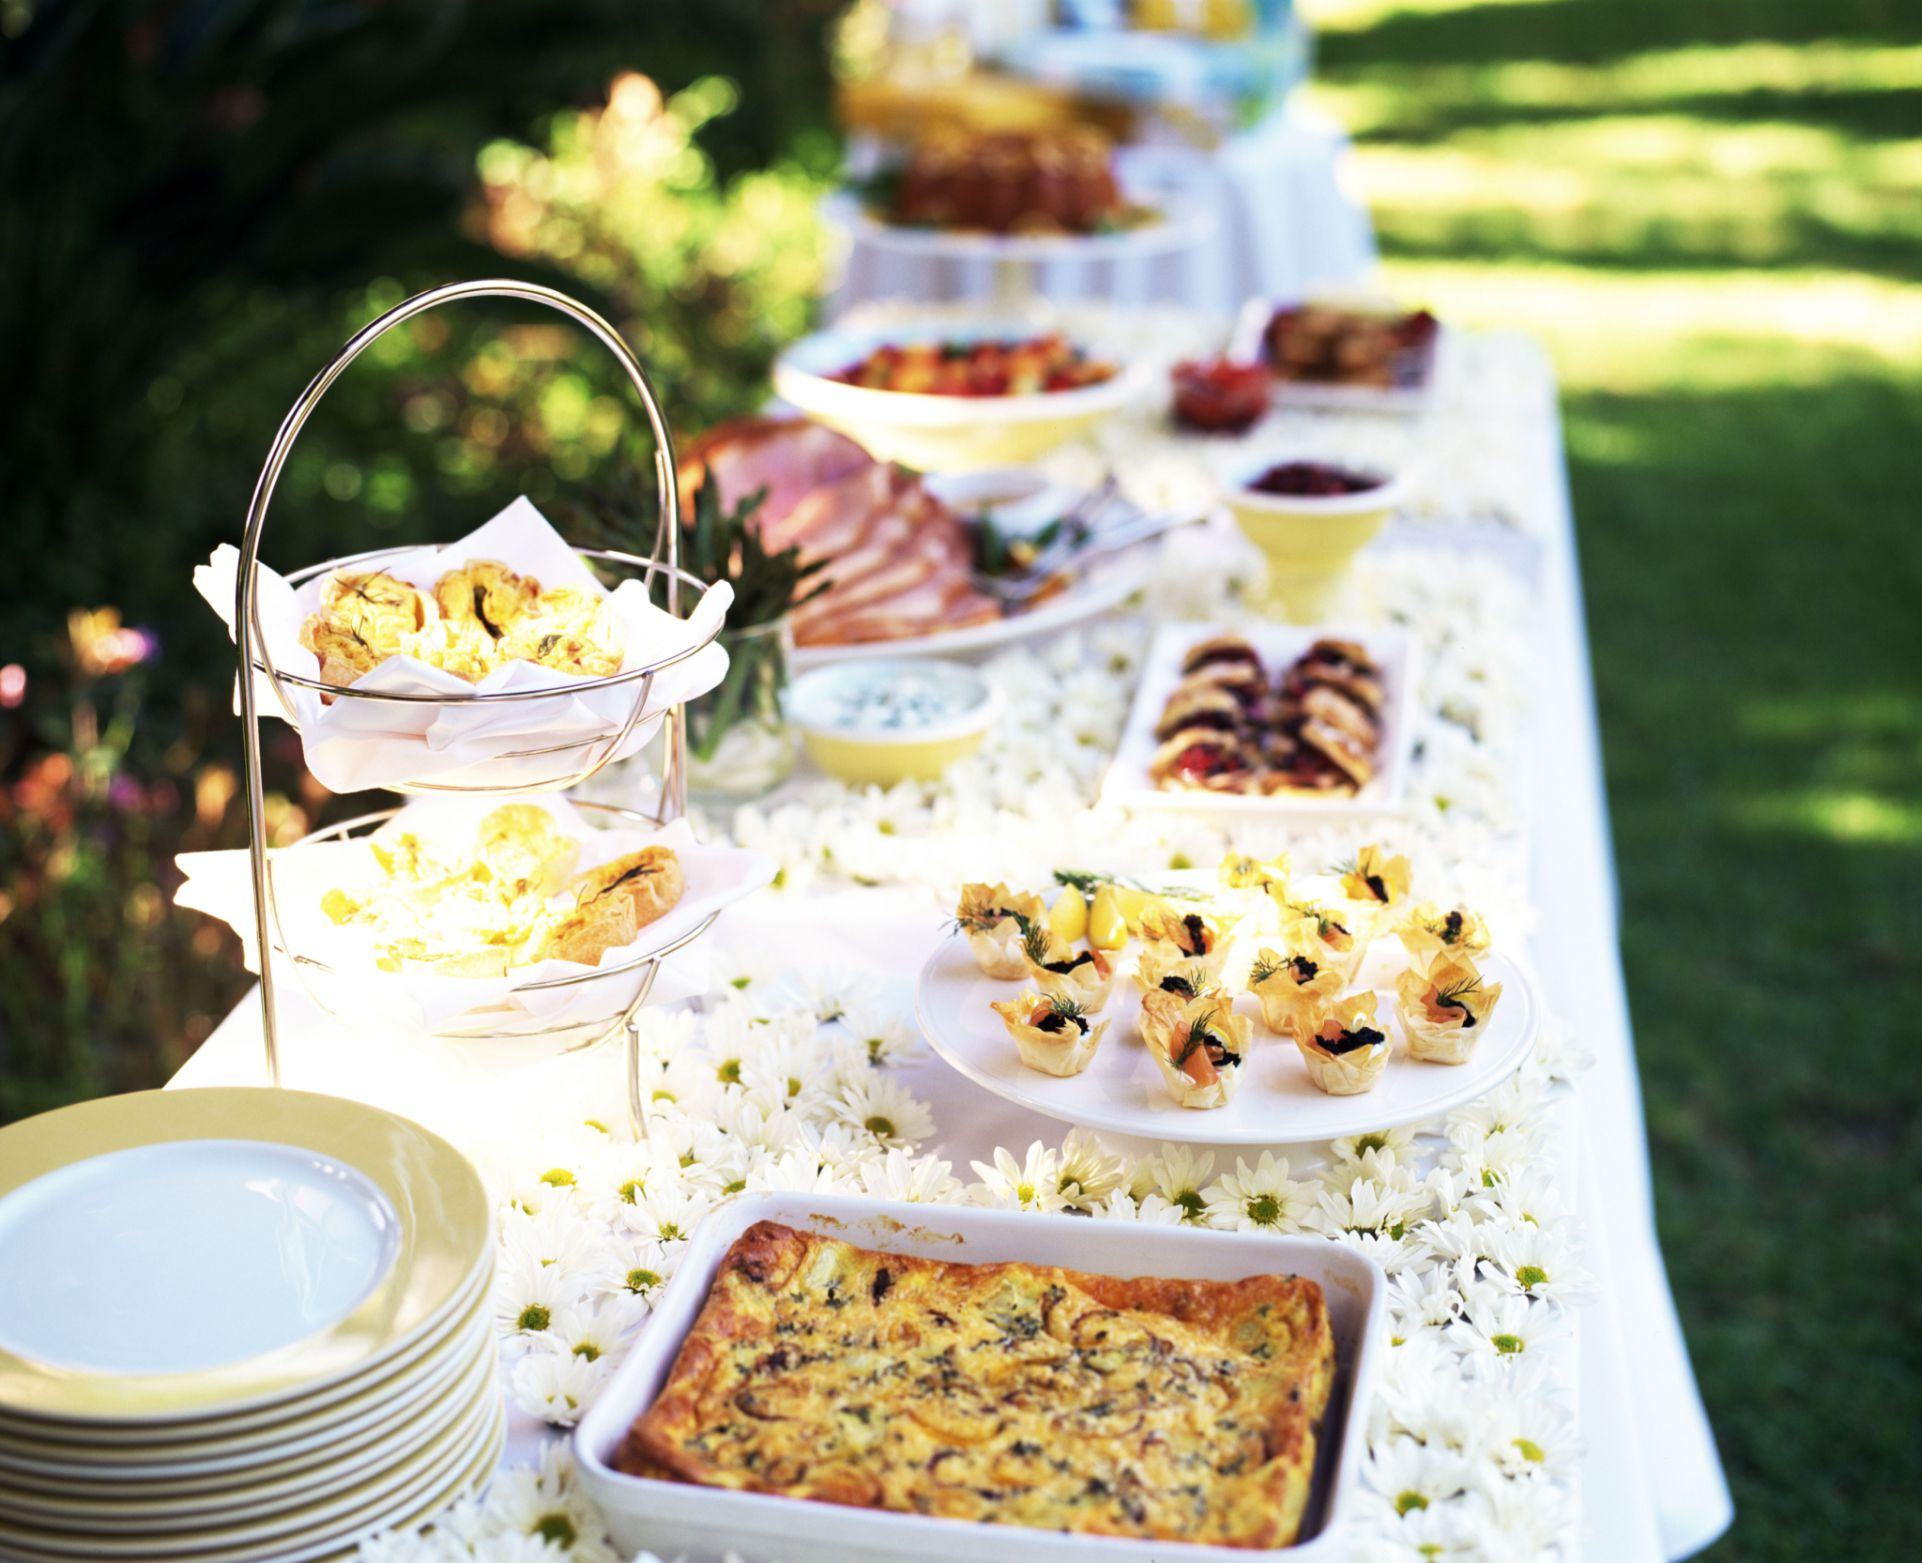 Treating Your Guests To A Day After Wedding Brunch